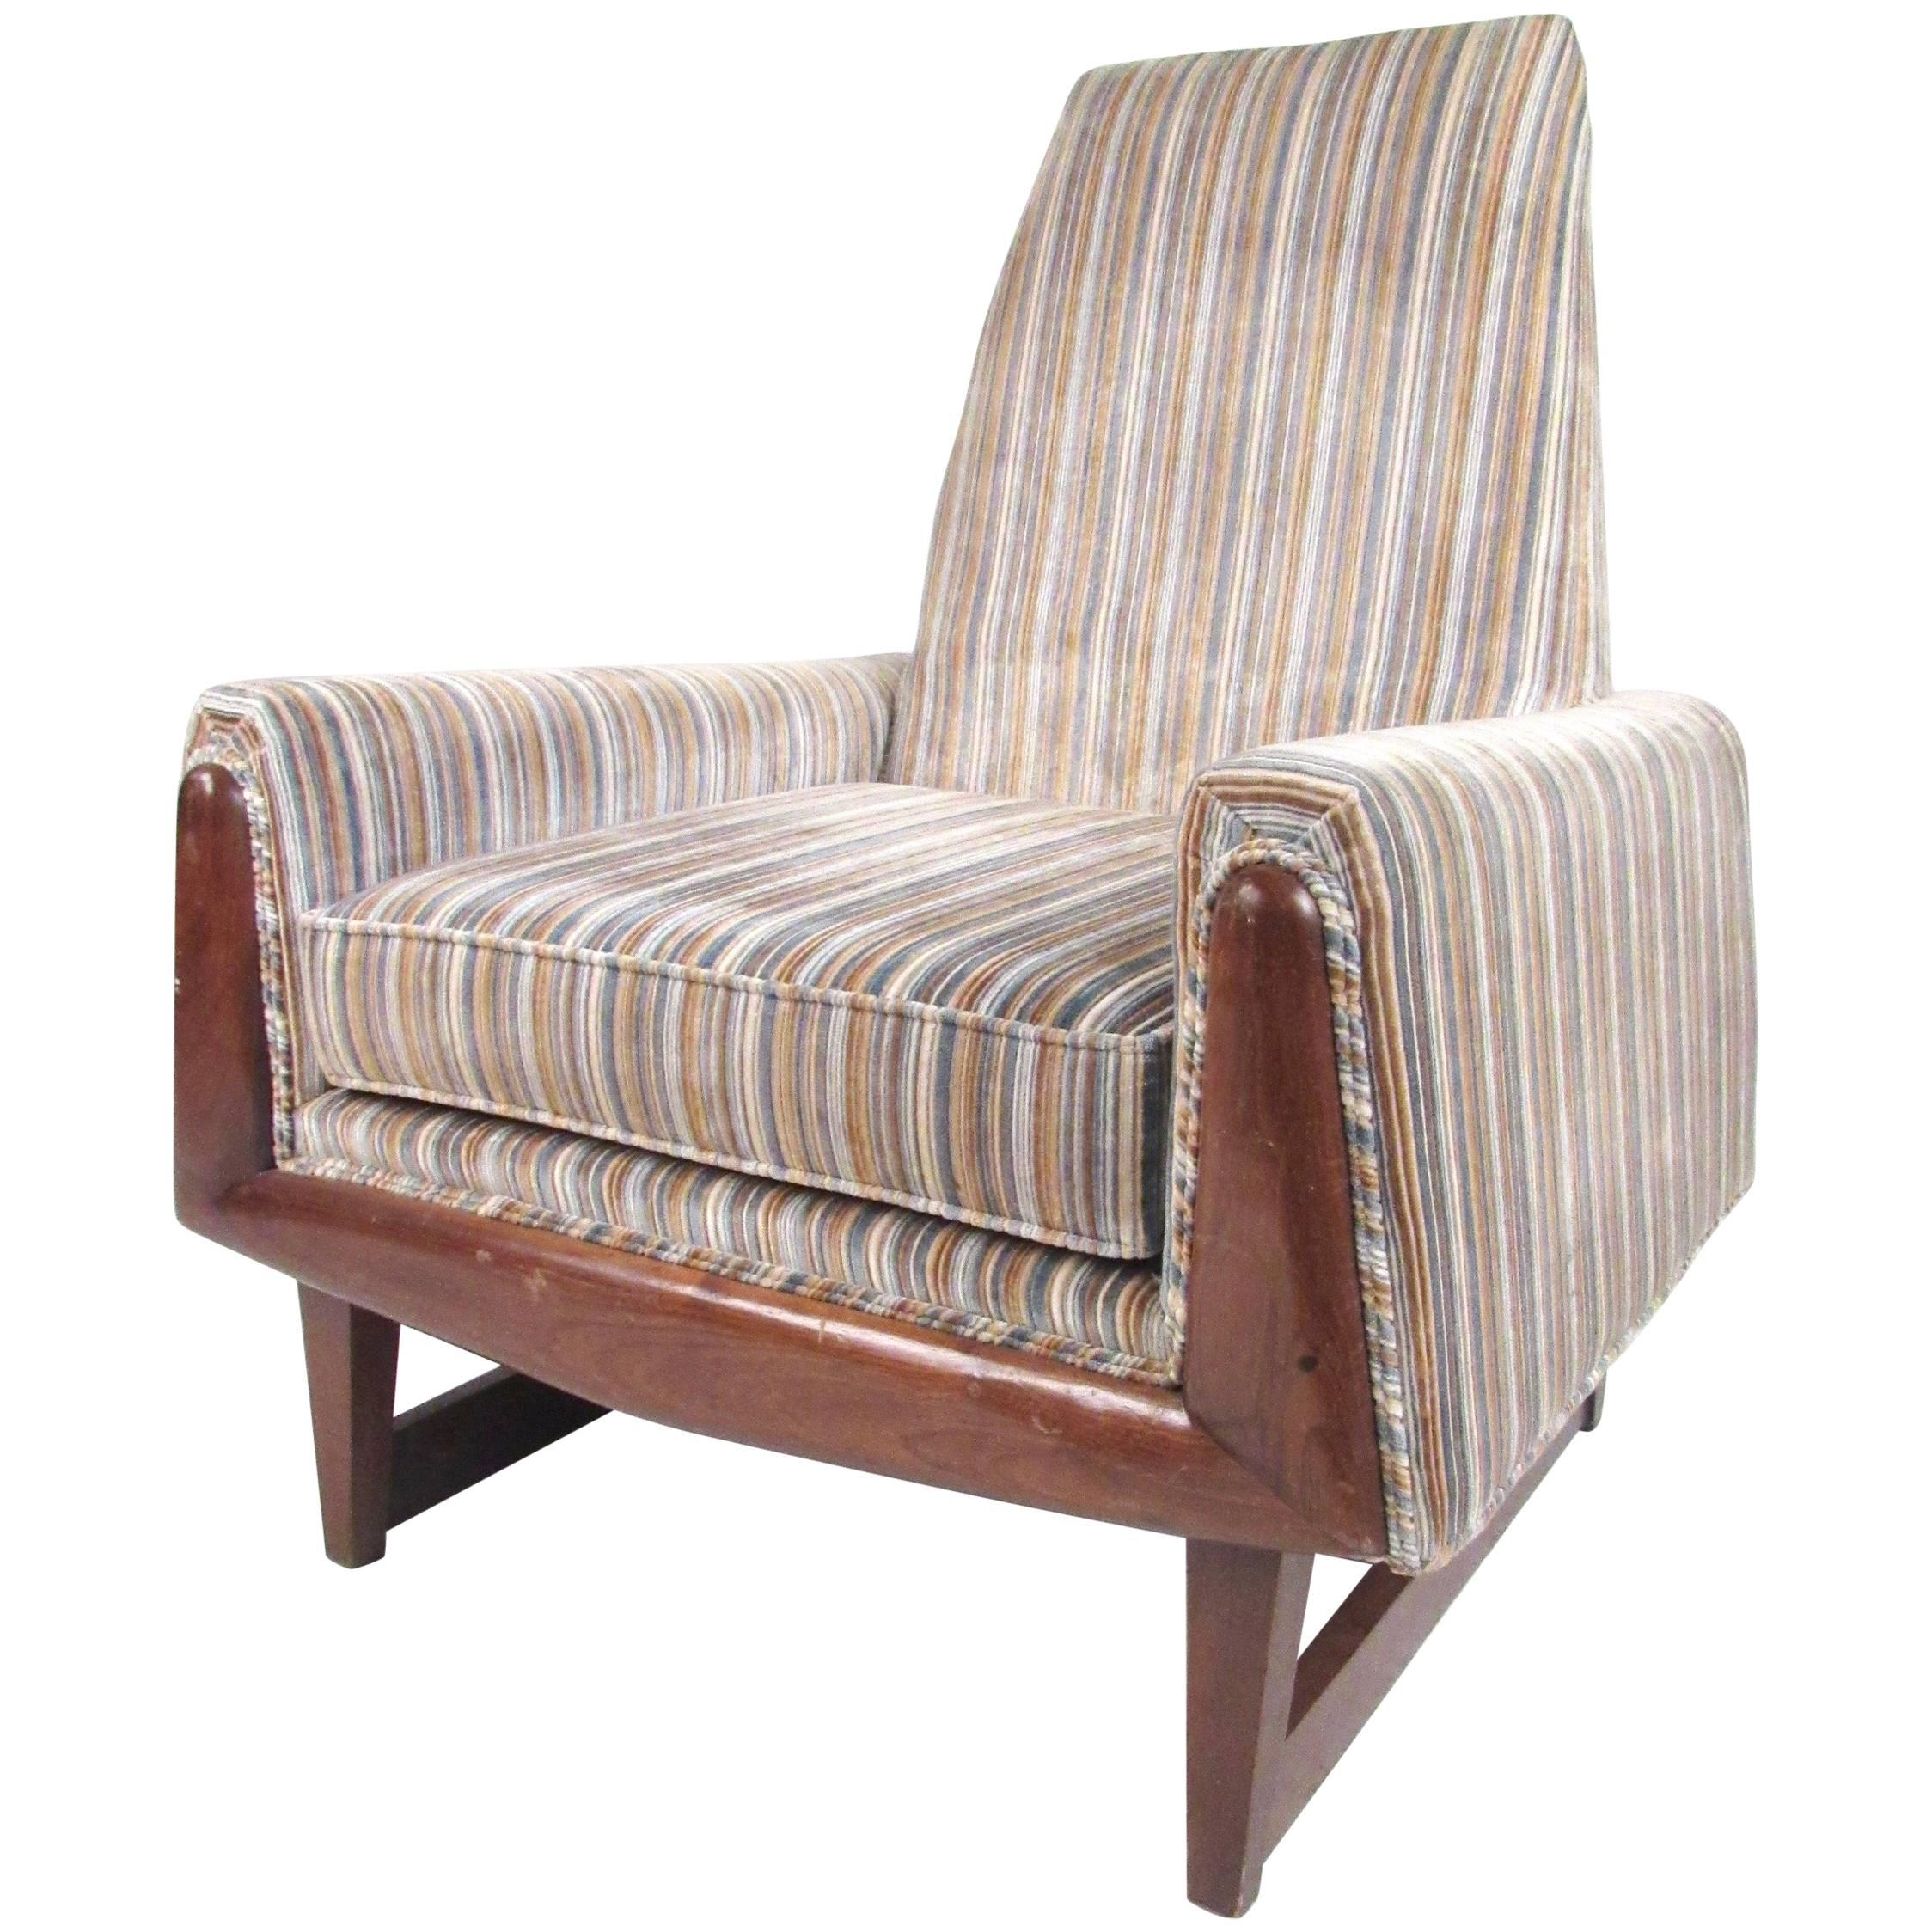 Vintage Modern Adrian Pearsall Style Lounge Chair